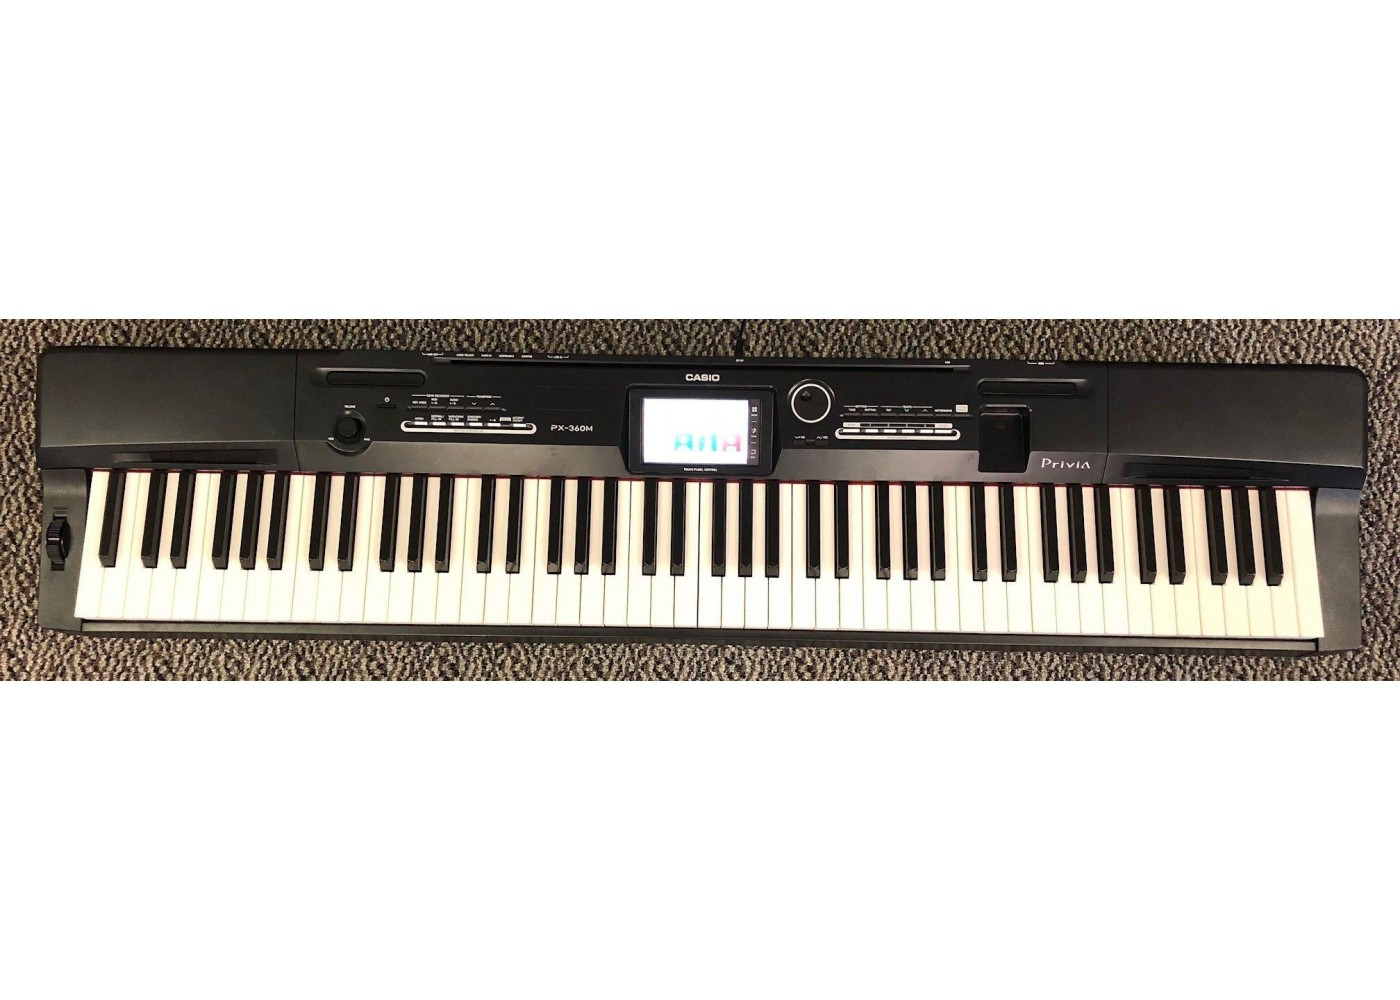 casio model px360bk 88 weighted key digital piano keyboard as is n267. Black Bedroom Furniture Sets. Home Design Ideas